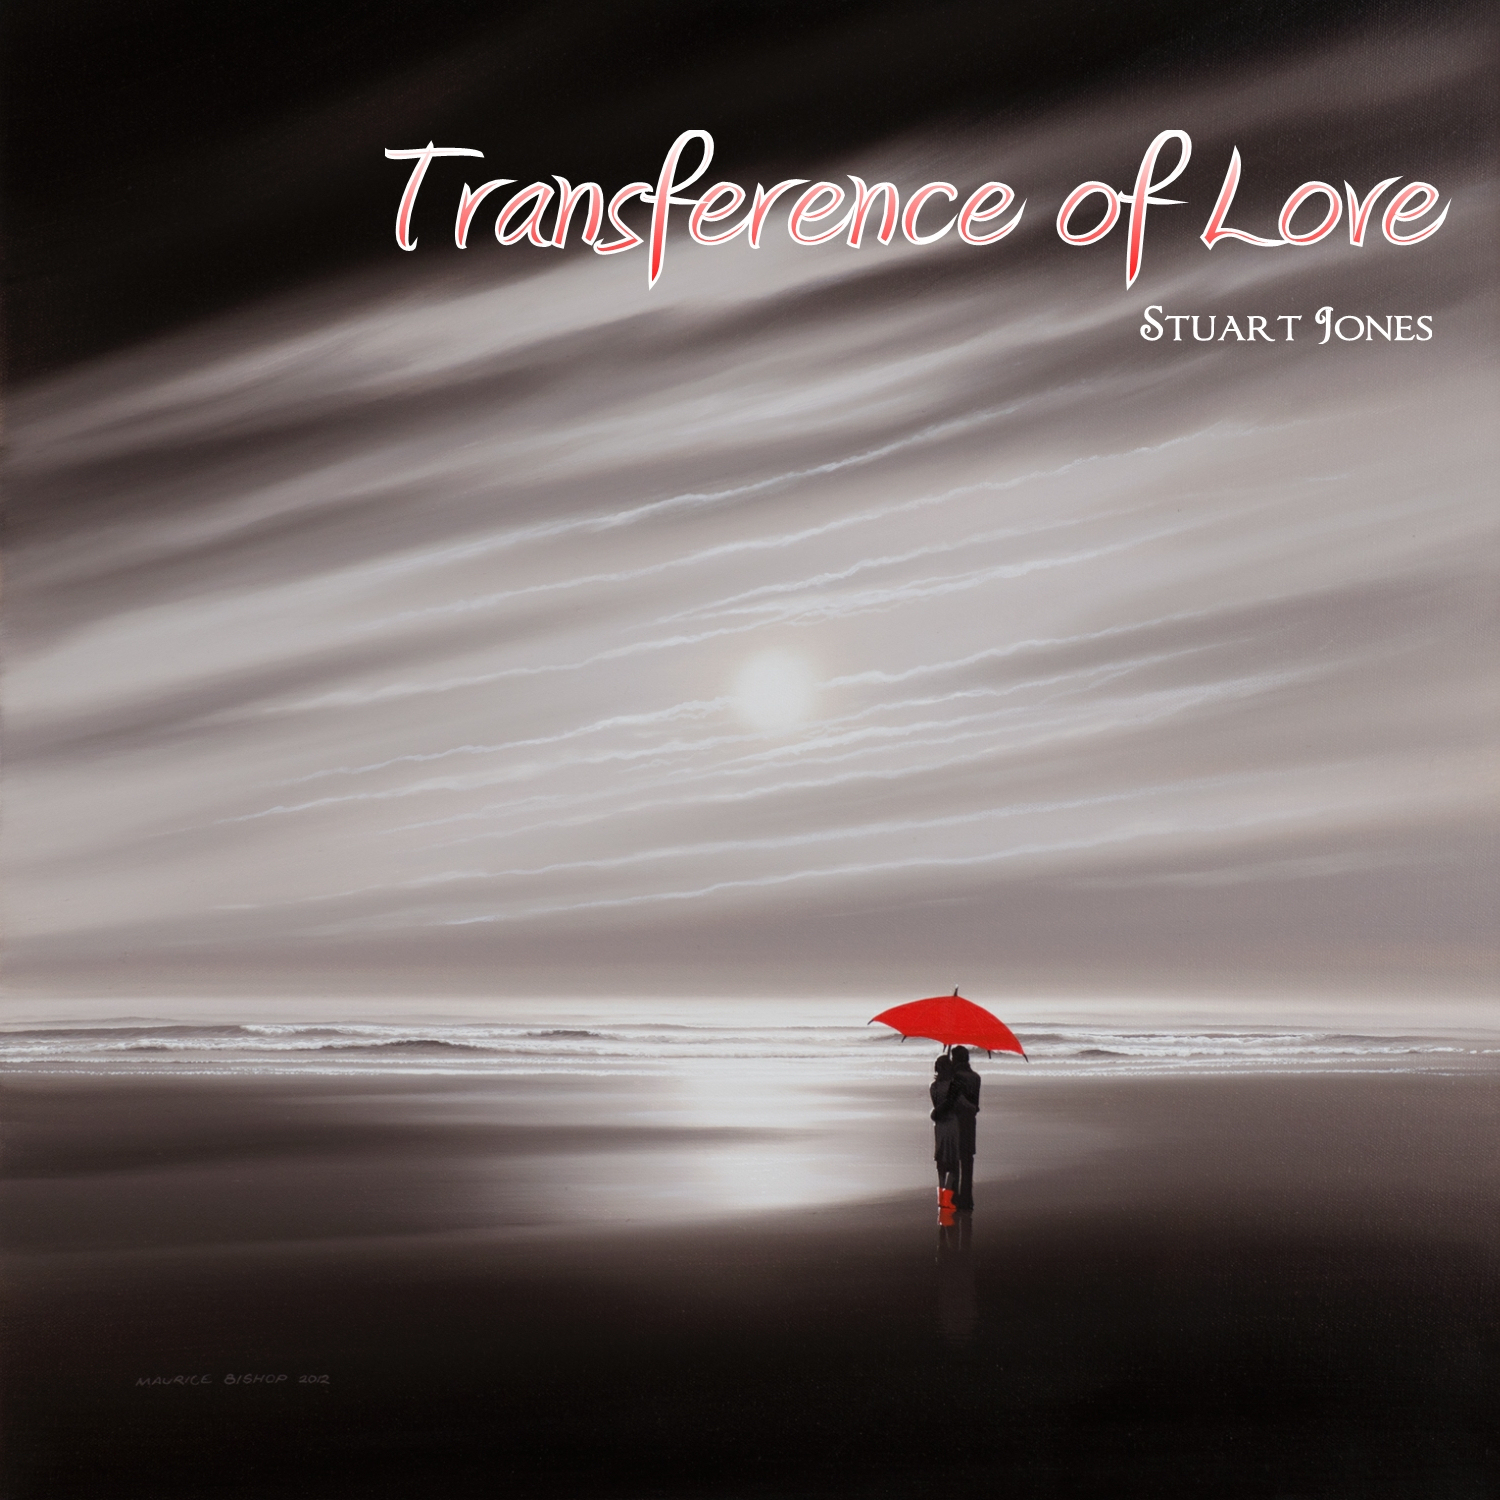 Transference of Love by Stuart Jones